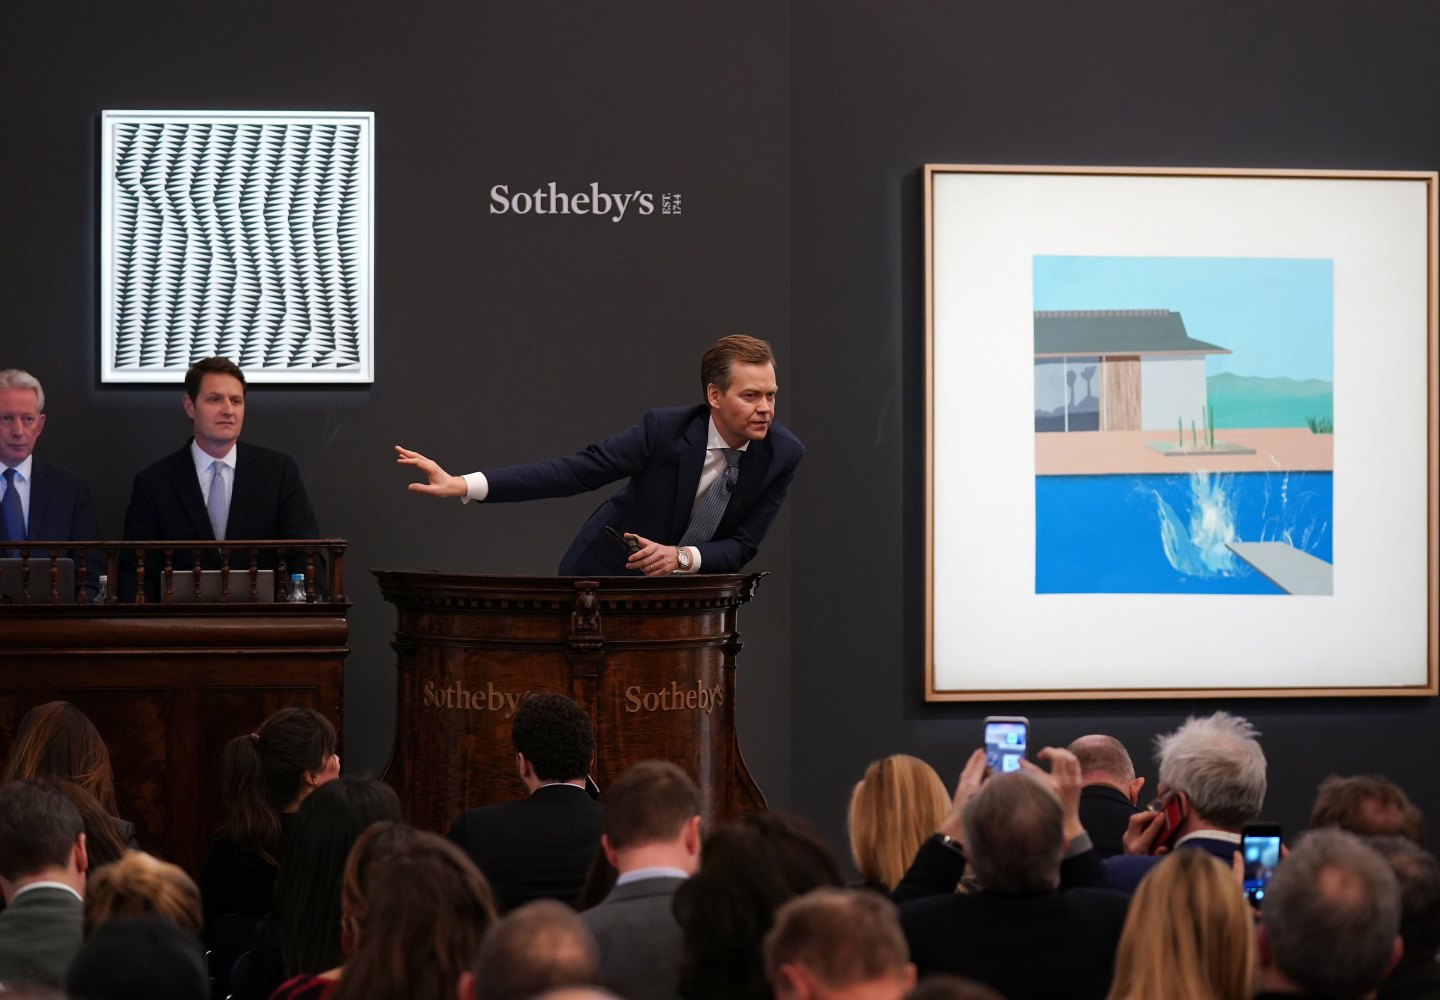 Sotheby's winter auction